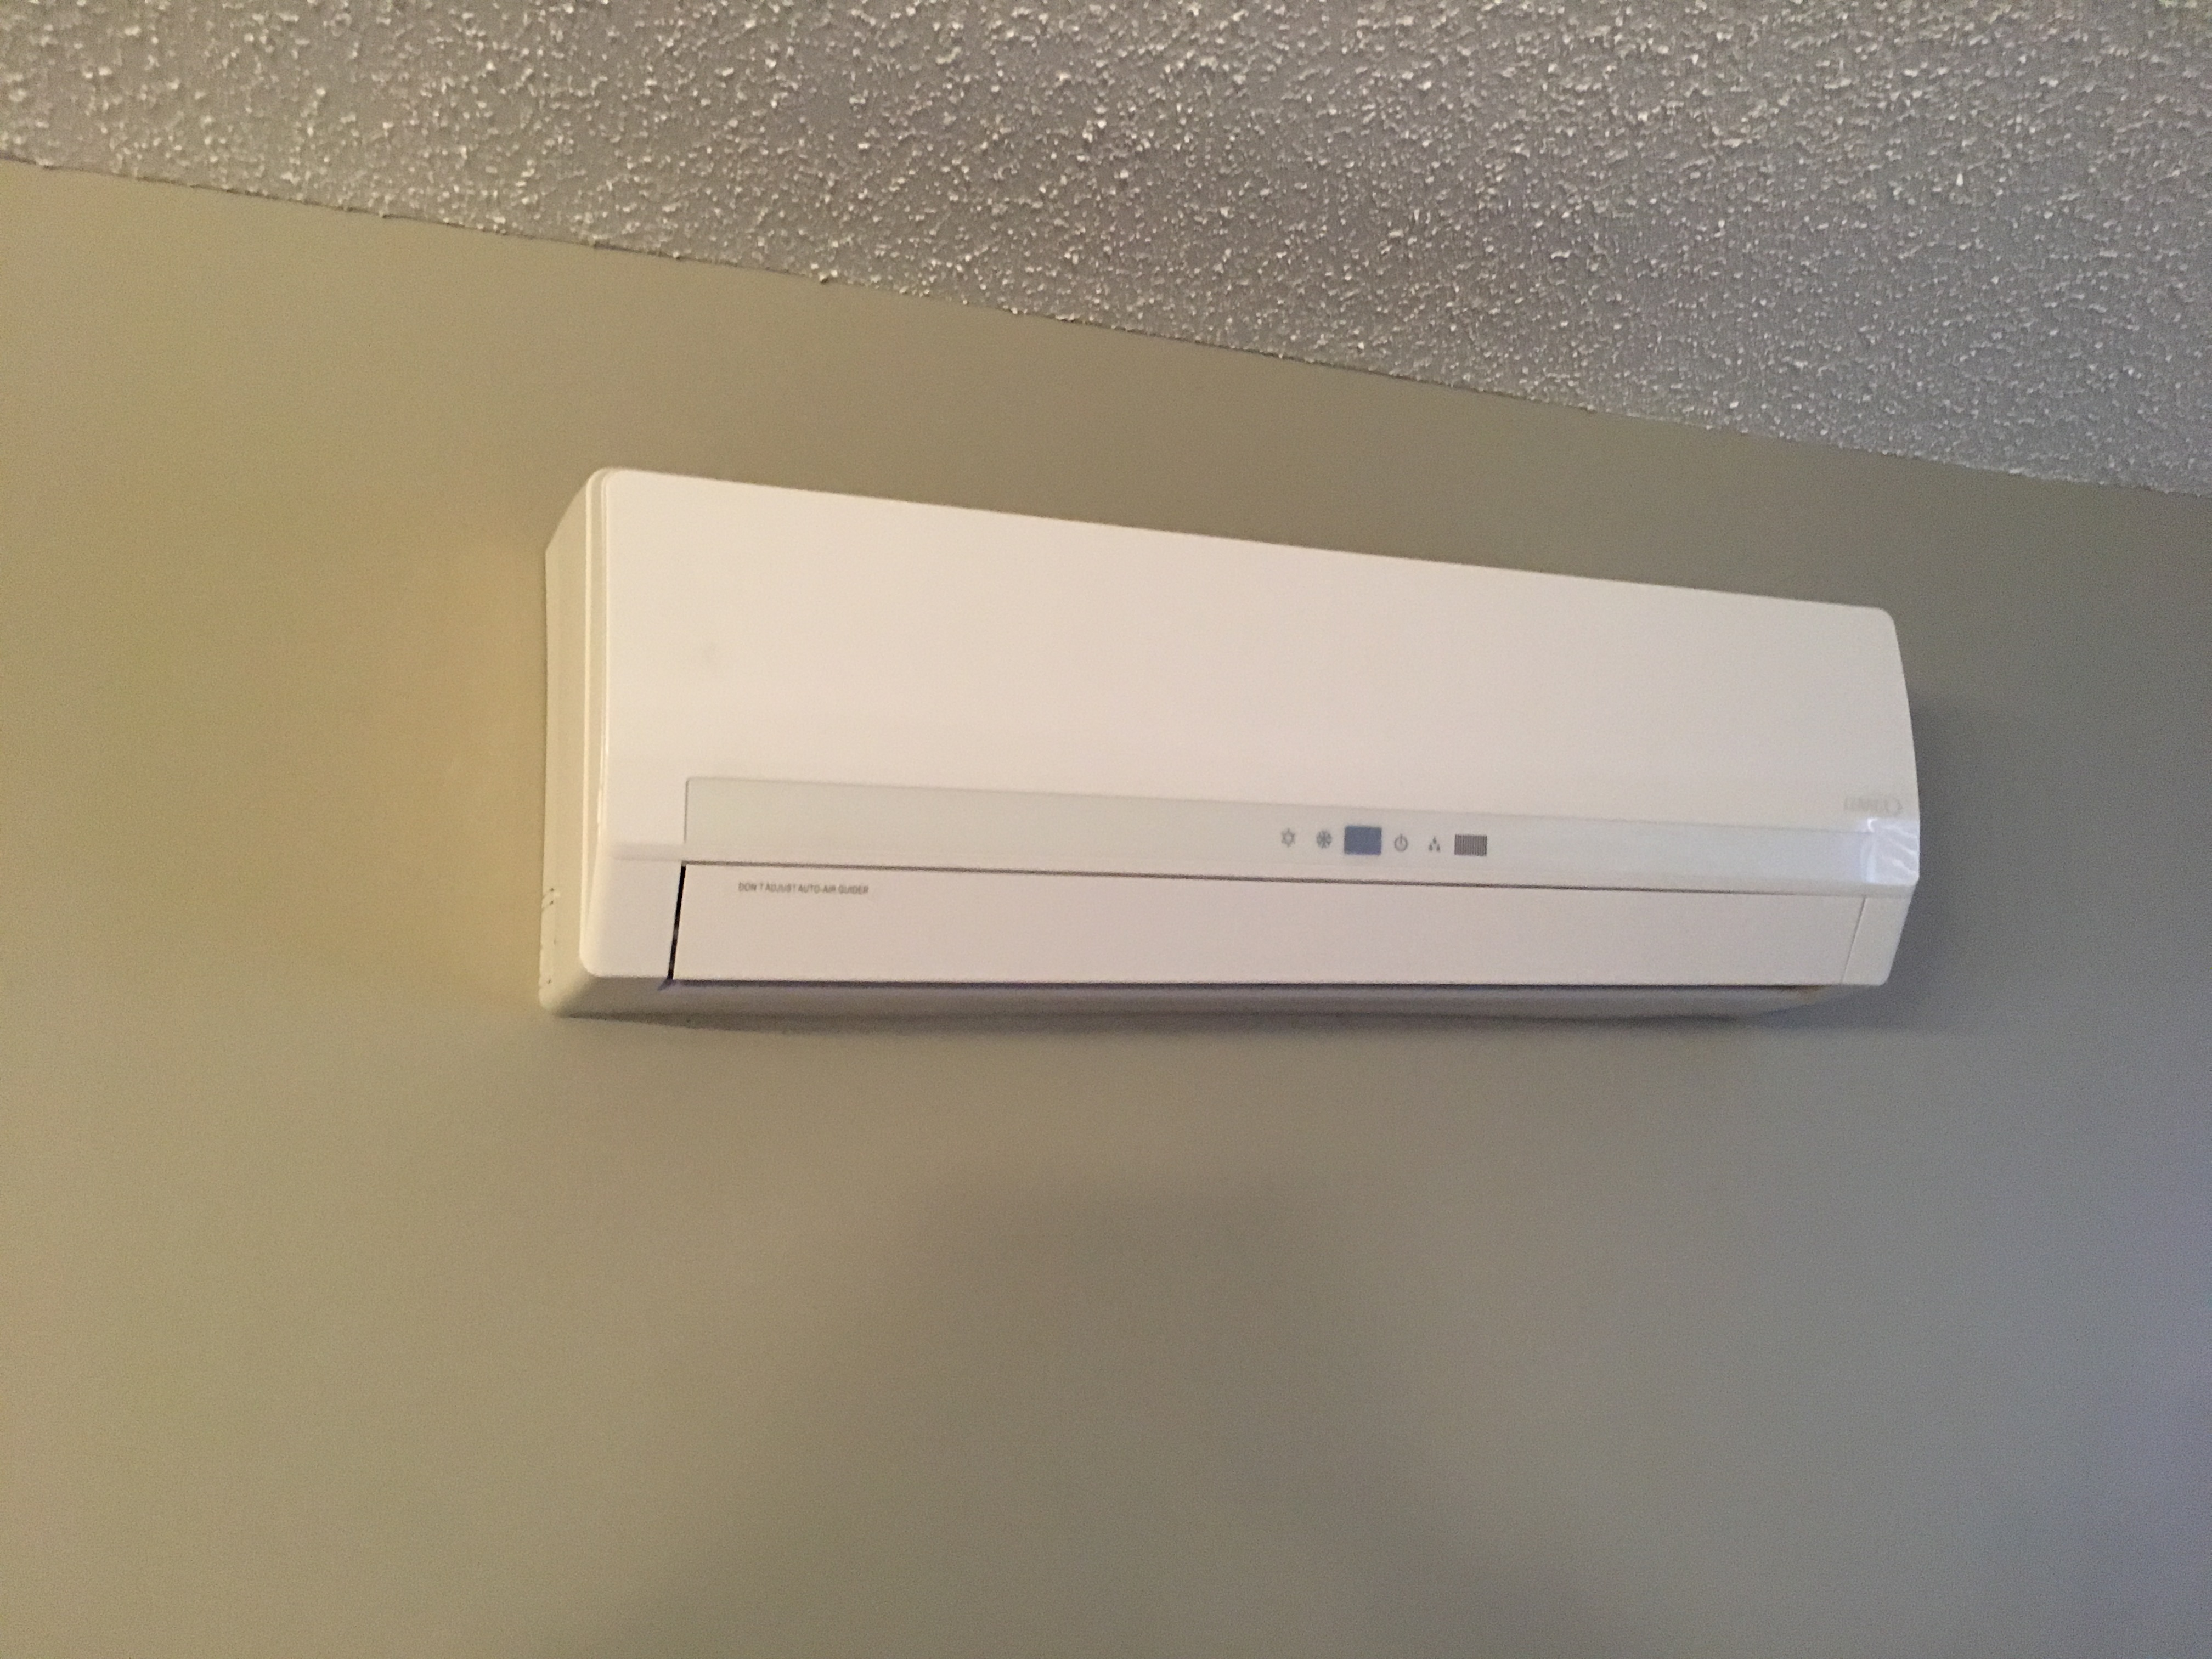 #836C48 Ductless Mini Split Air Conditioner Trust Home Comfort Brand New 8831 Air Conditioning Installation Edmonton images with 4032x3024 px on helpvideos.info - Air Conditioners, Air Coolers and more